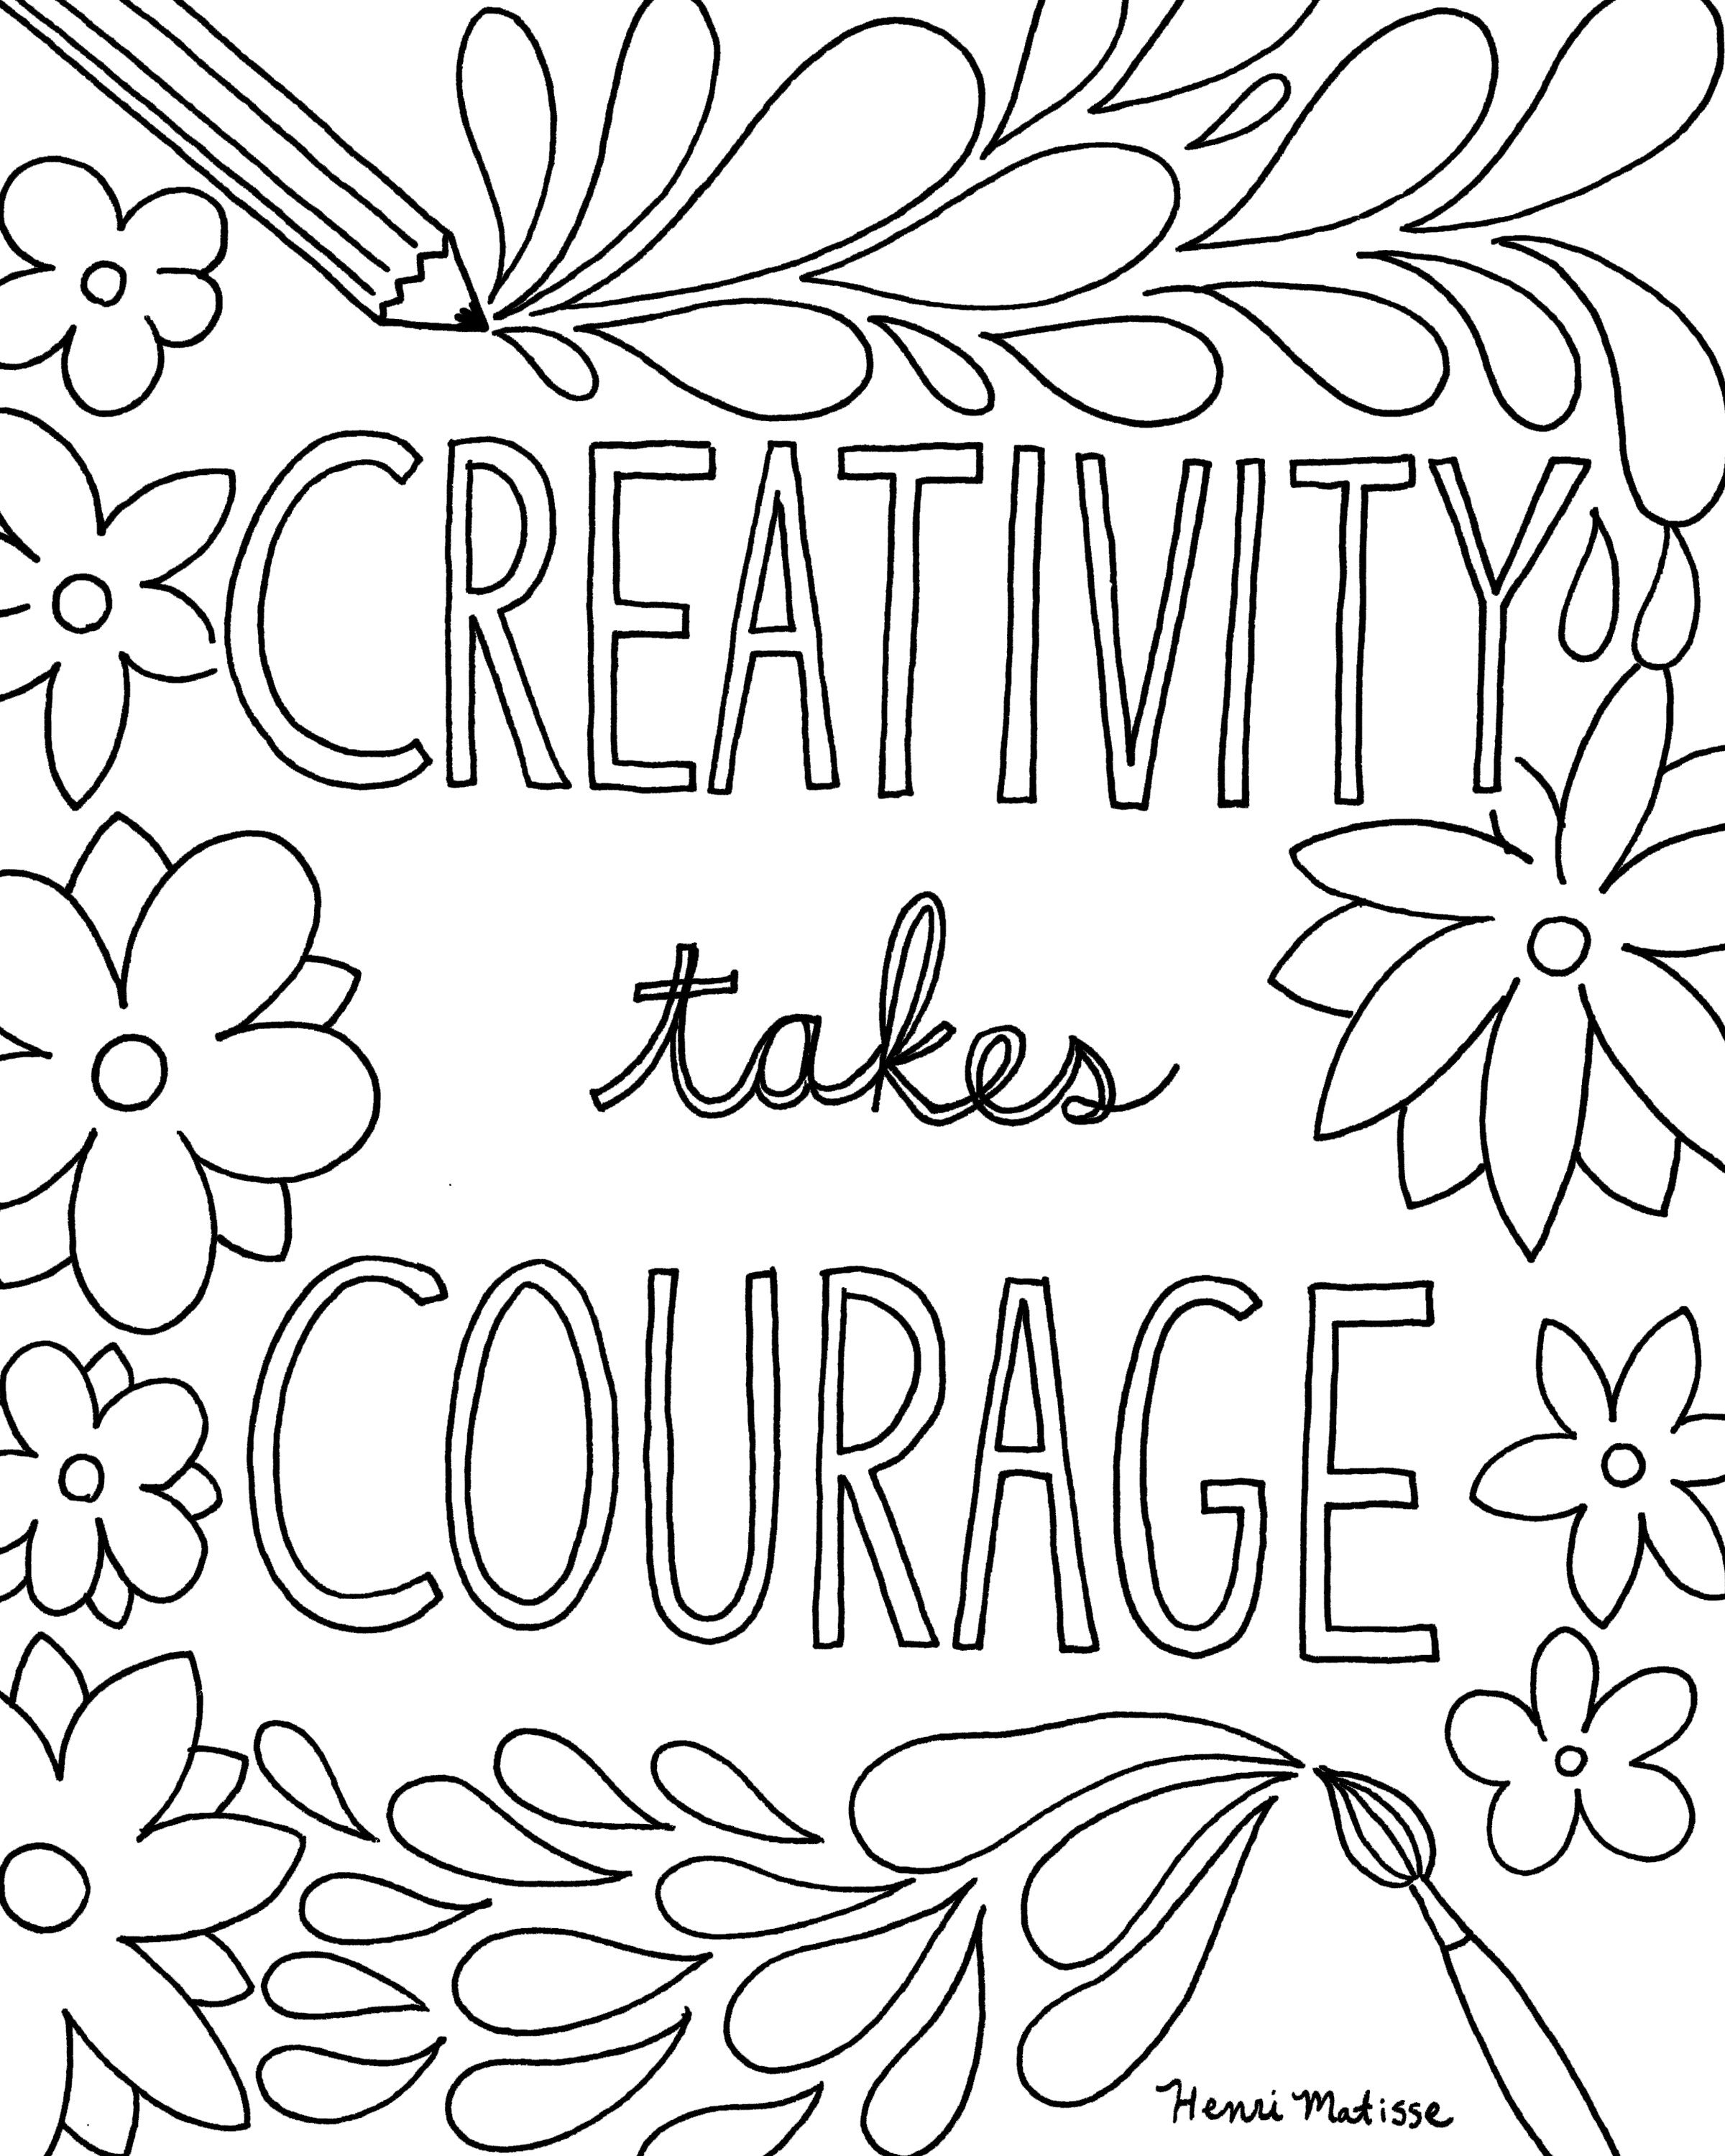 Craftsy Com Express Your Creativity Quote Coloring Pages Inspirational Quotes Coloring Coloring Pages For Grown Ups